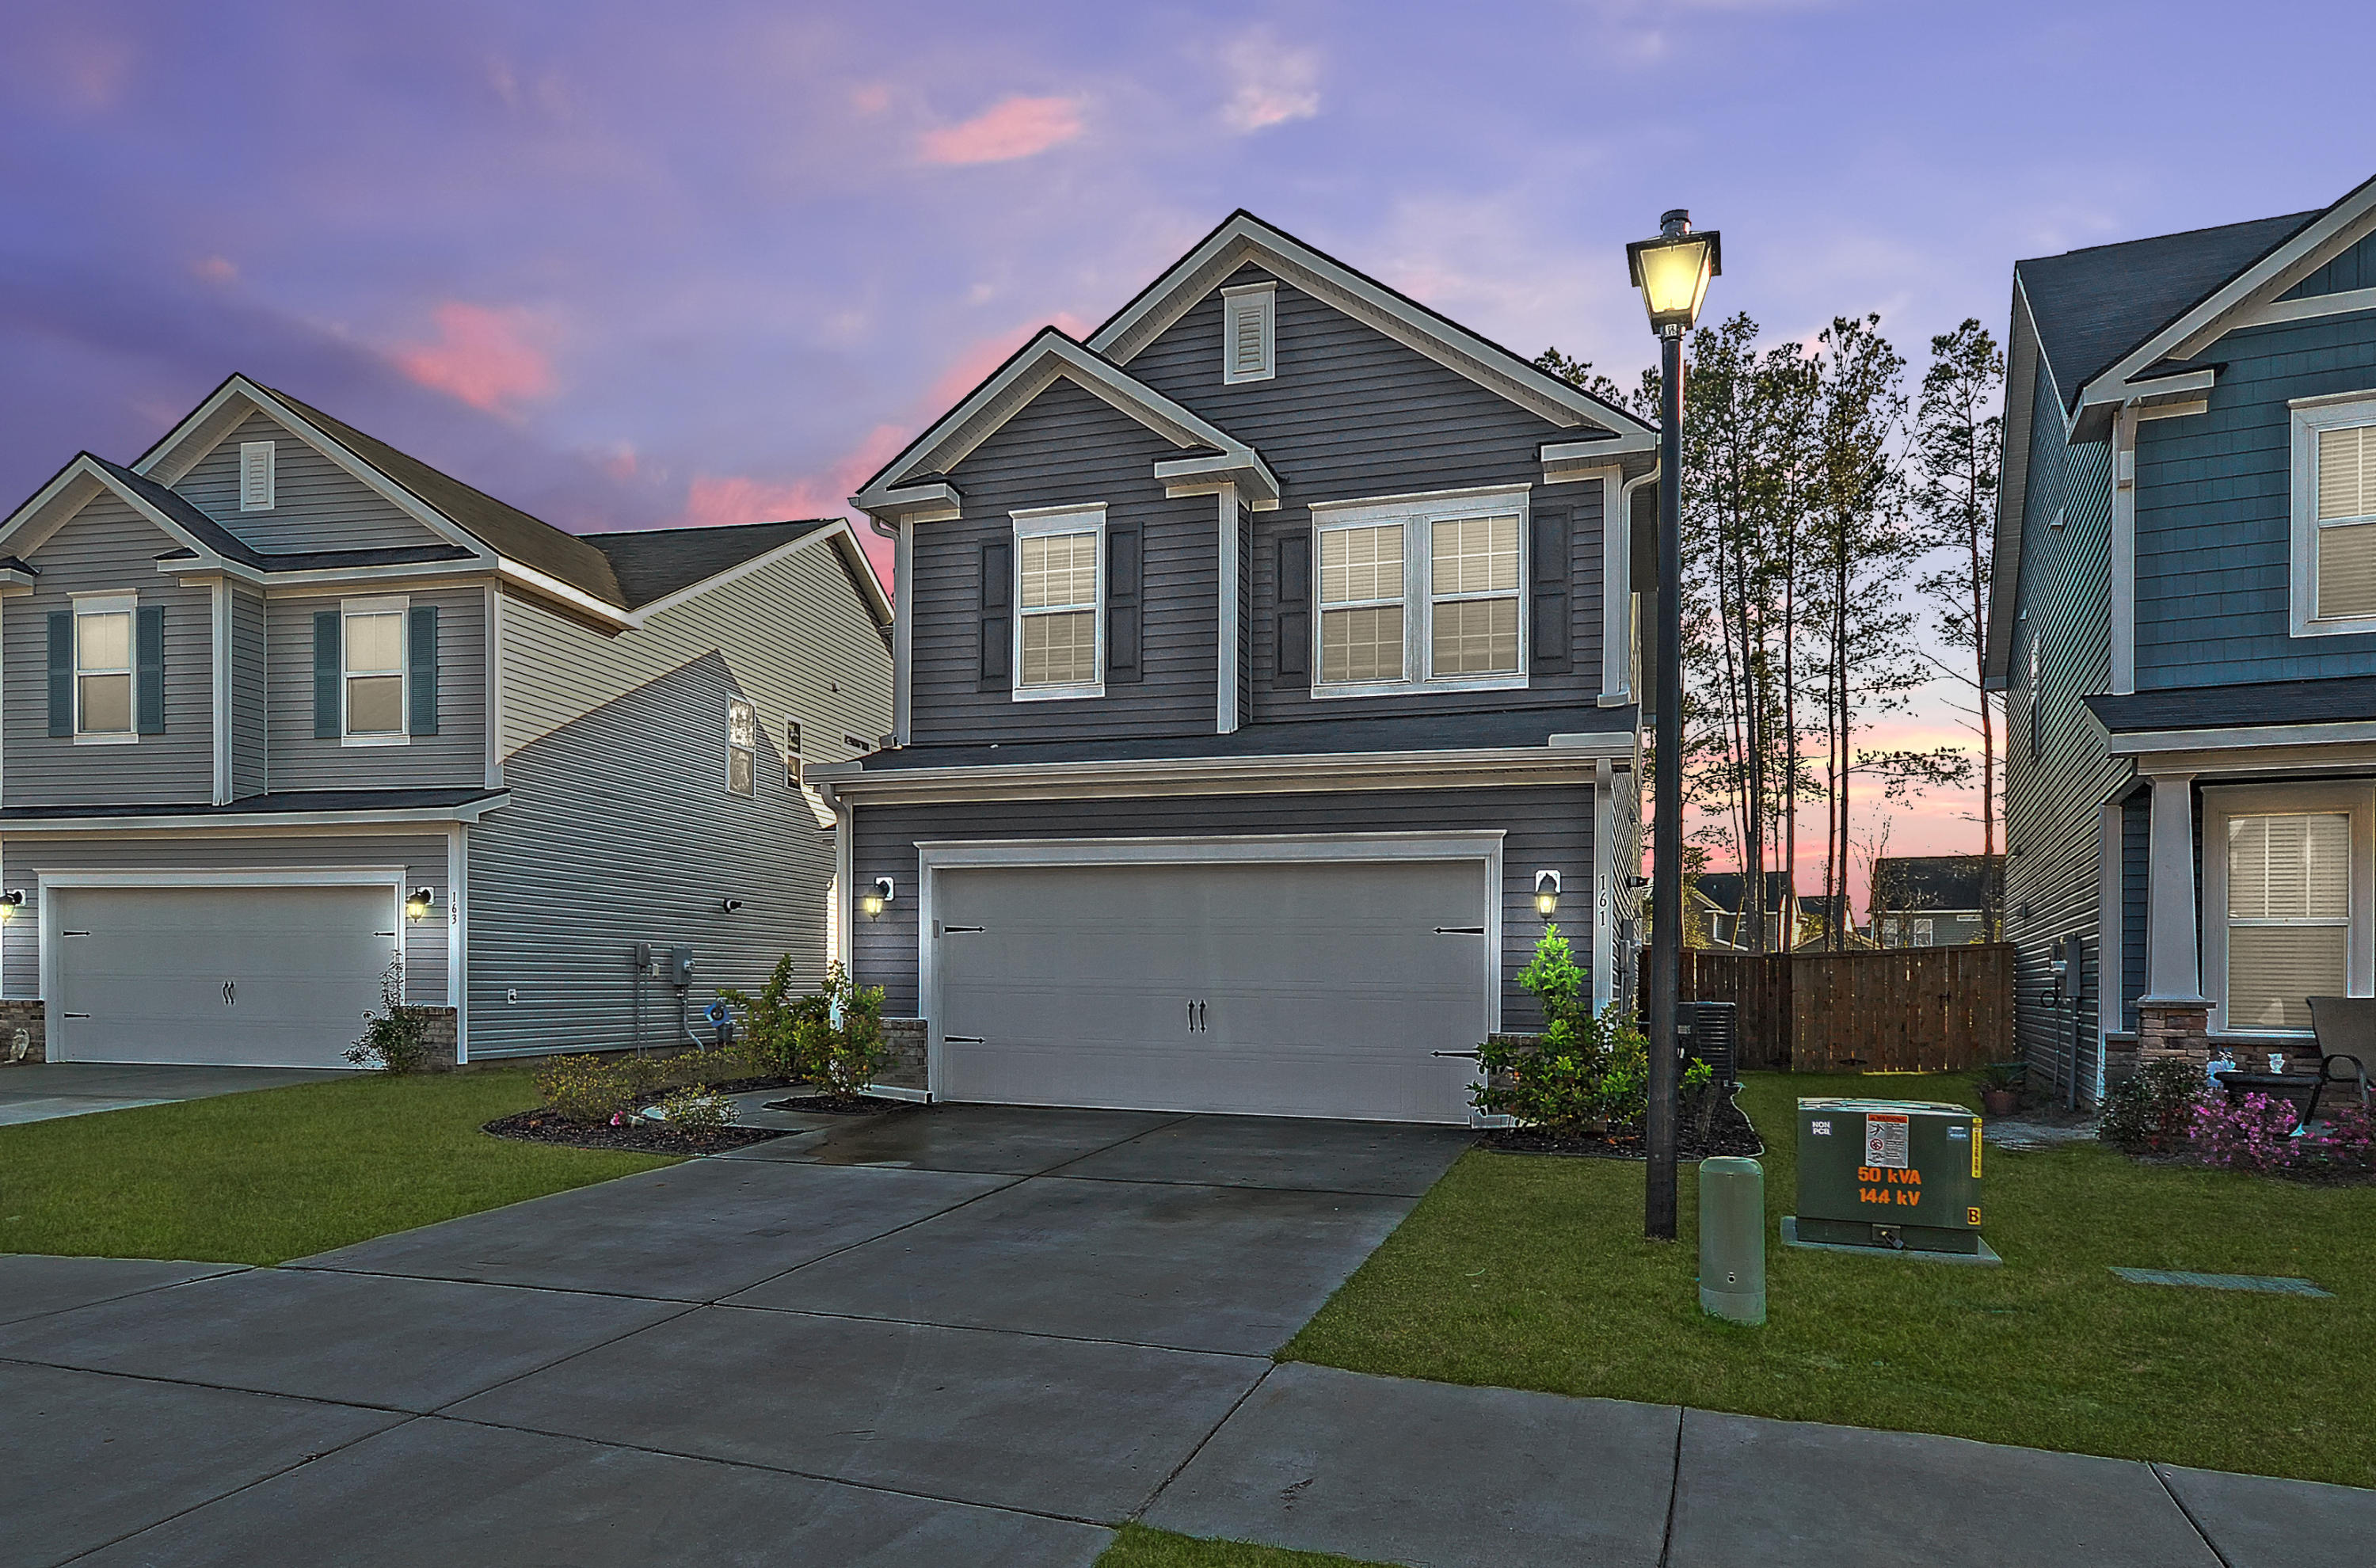 161 Basket Grass Lane Summerville, SC 29486